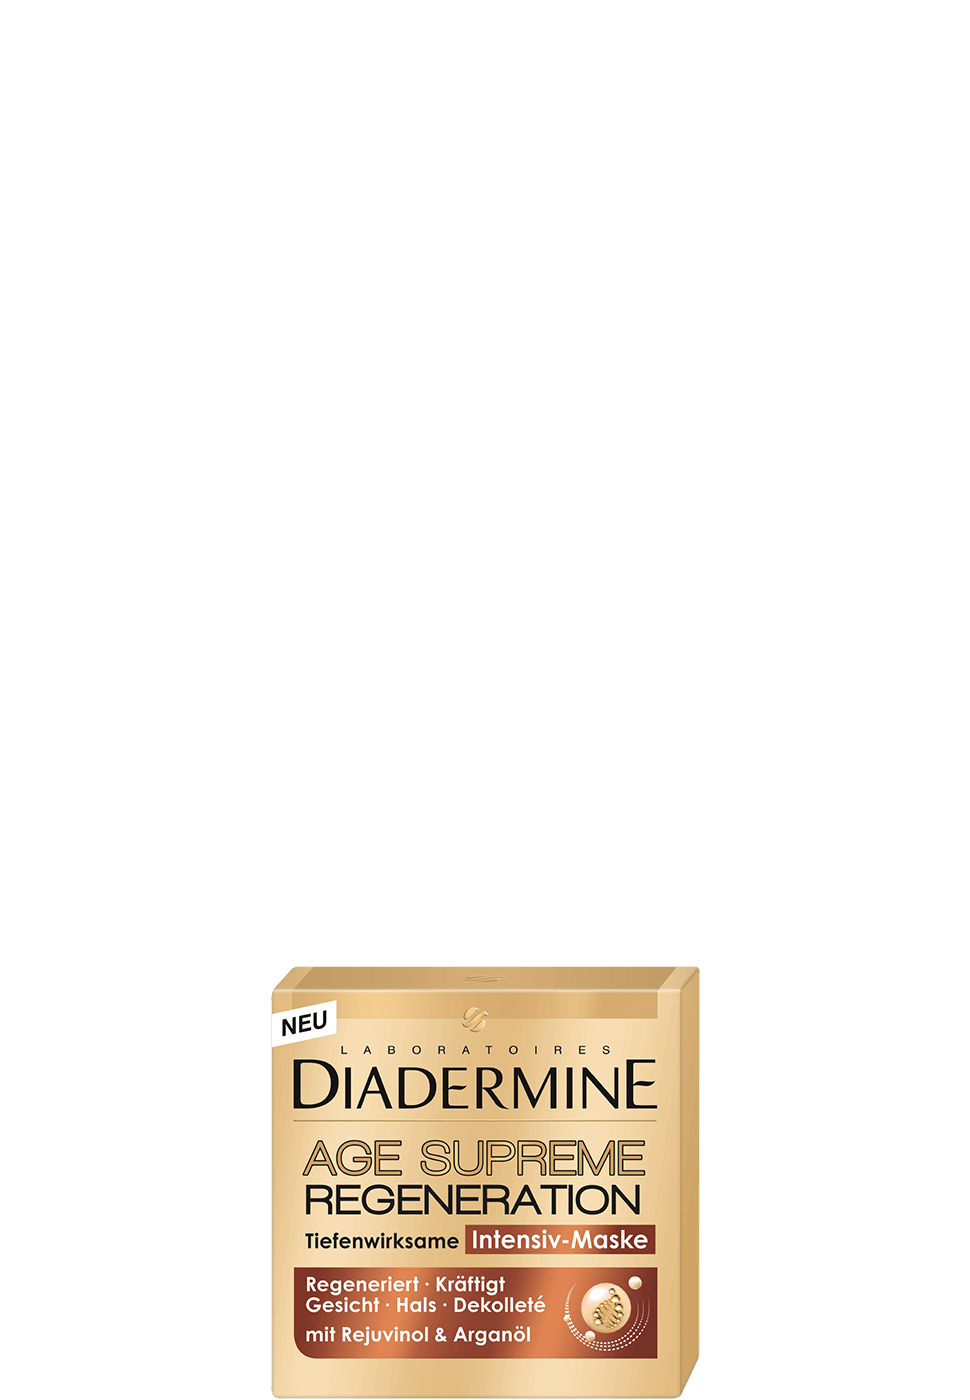 diadermine_at_age_supreme_regeneration_intensiv_maske_970x1400